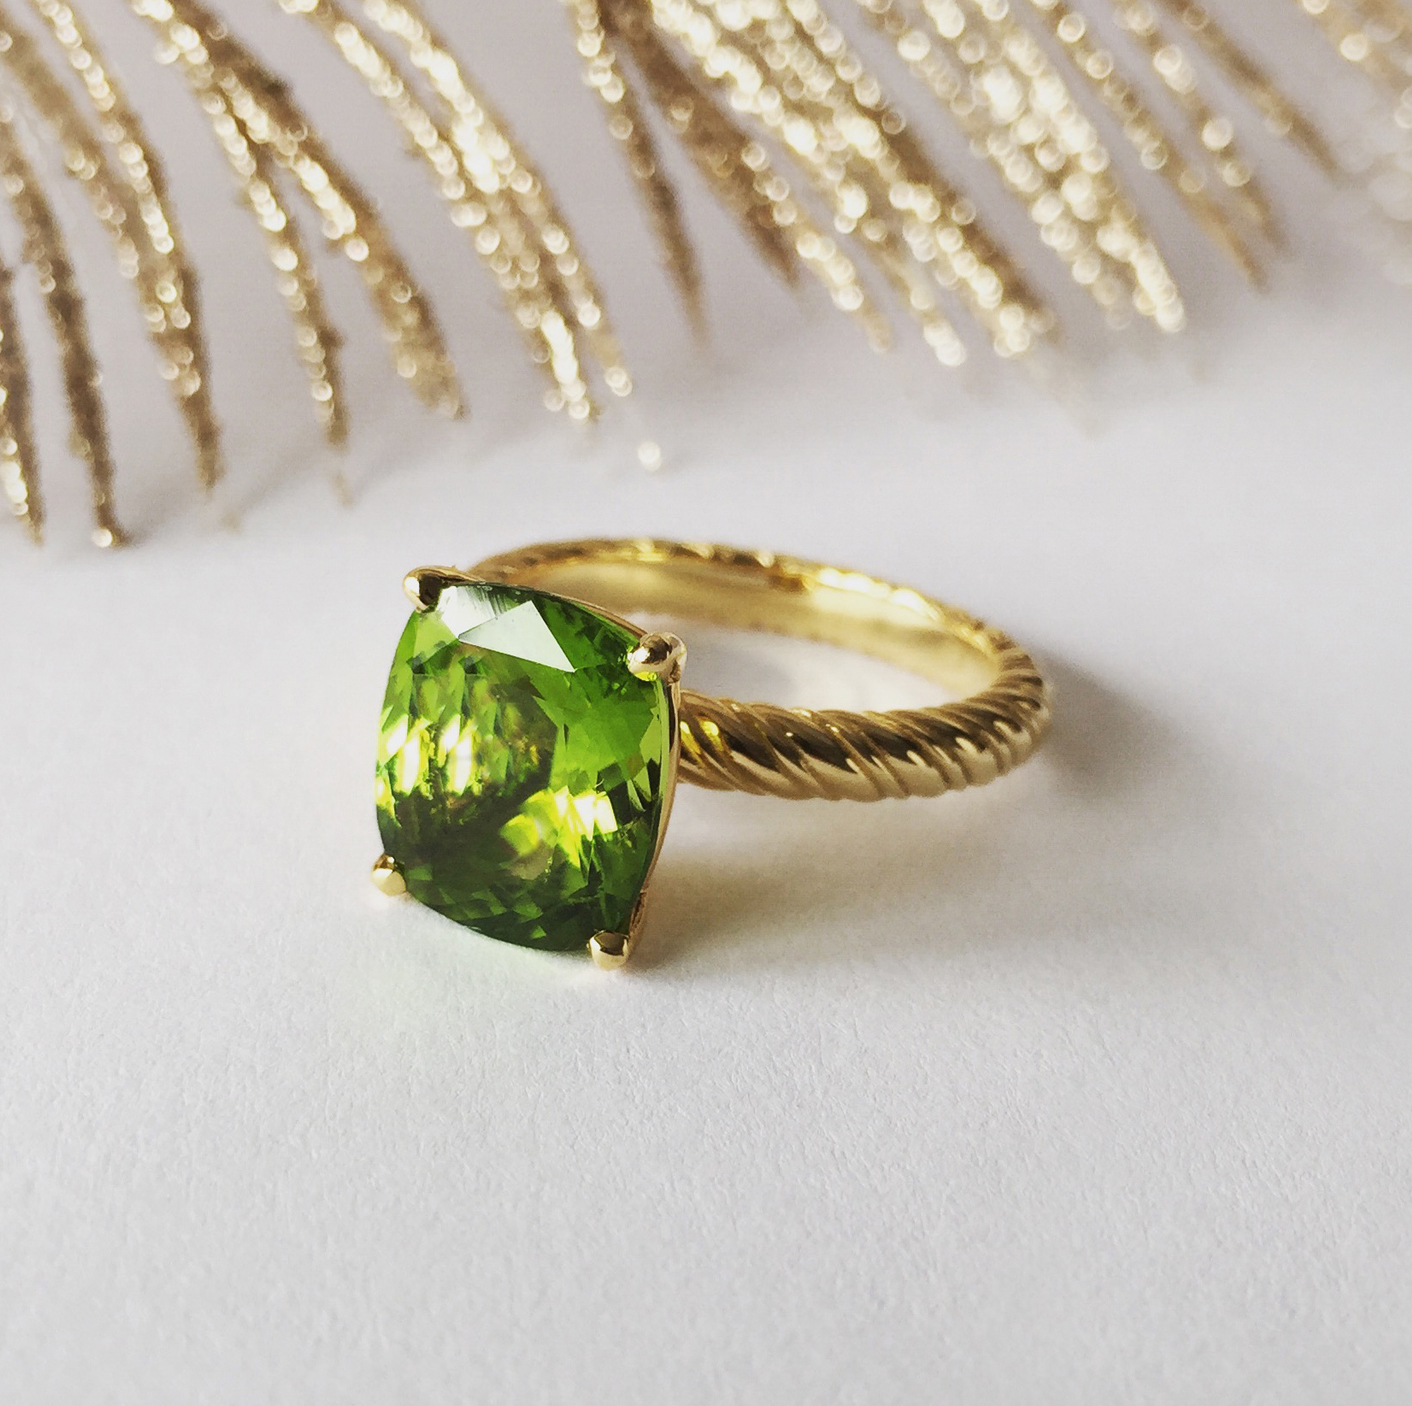 realisation-bague-corps-torsade-peridot-imagine-3d-montreal